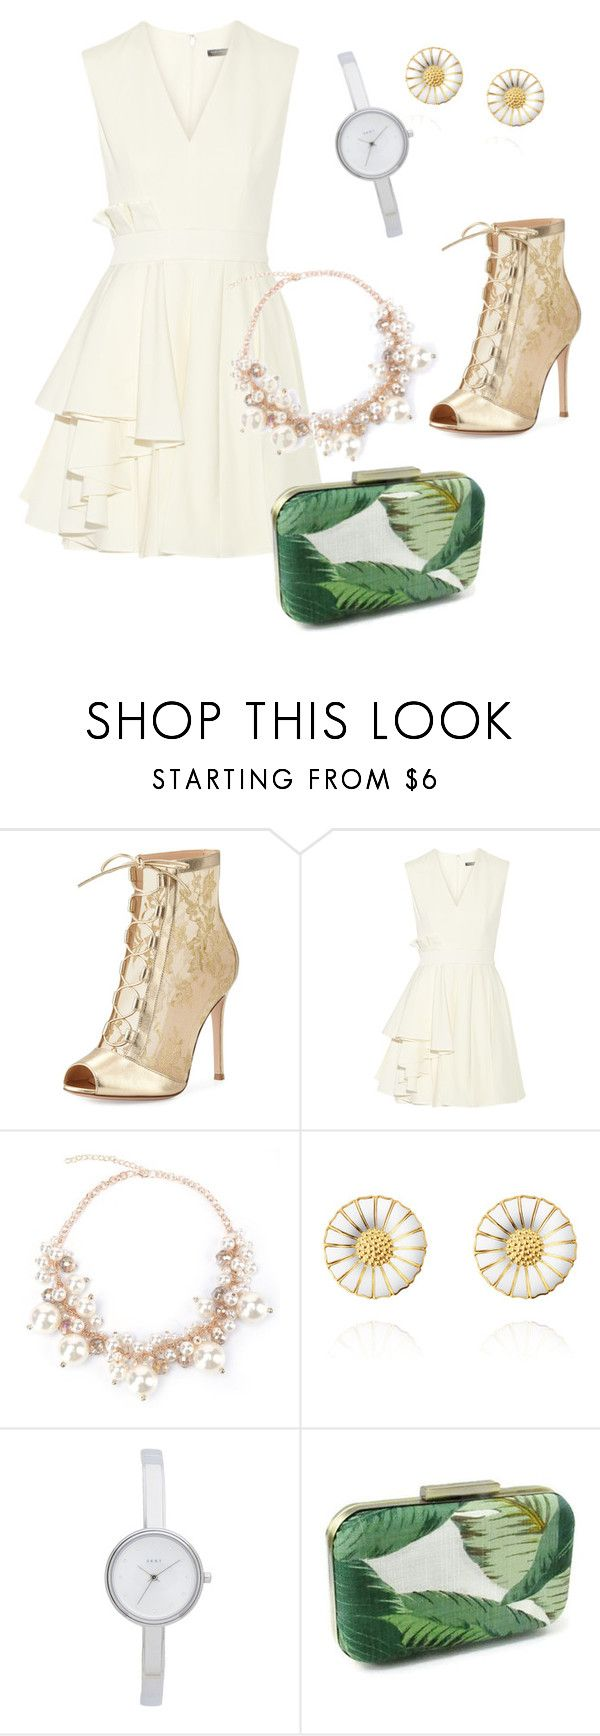 """""""outfit#104"""" by alifia-fae on Polyvore featuring Gianvito Rossi, Alexander McQueen and DKNY"""